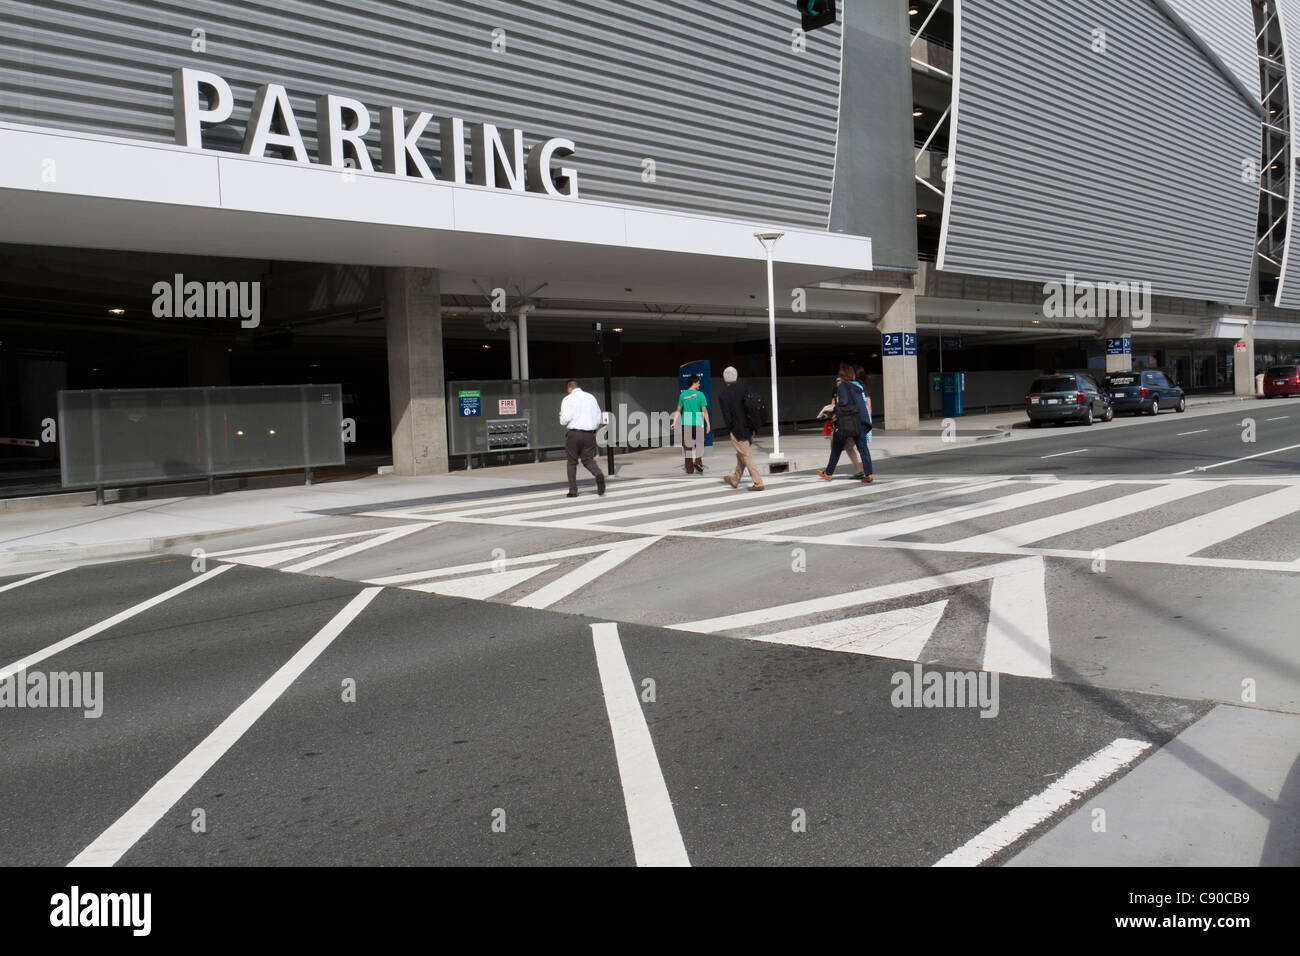 People walking across crosswalk toward parking structure at San Jose Airport in California - Stock Image